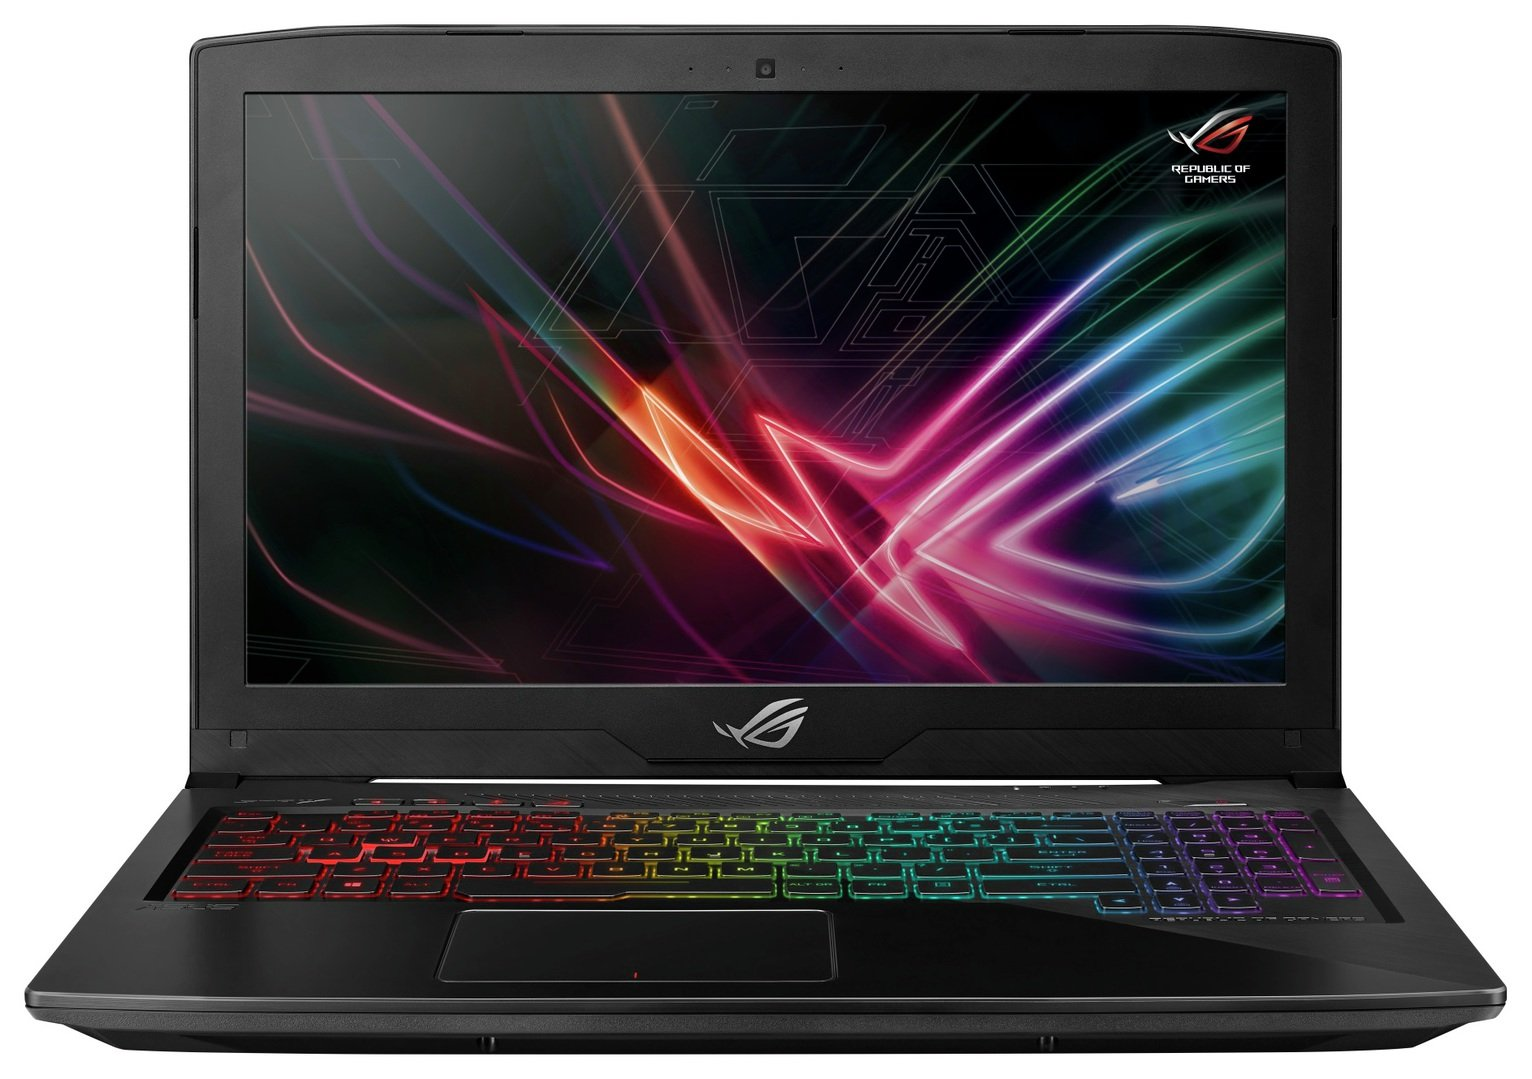 Image of ASUS ROG GL503VS i5 8GB 2TB 256GB GTX1070 Gaming Laptop